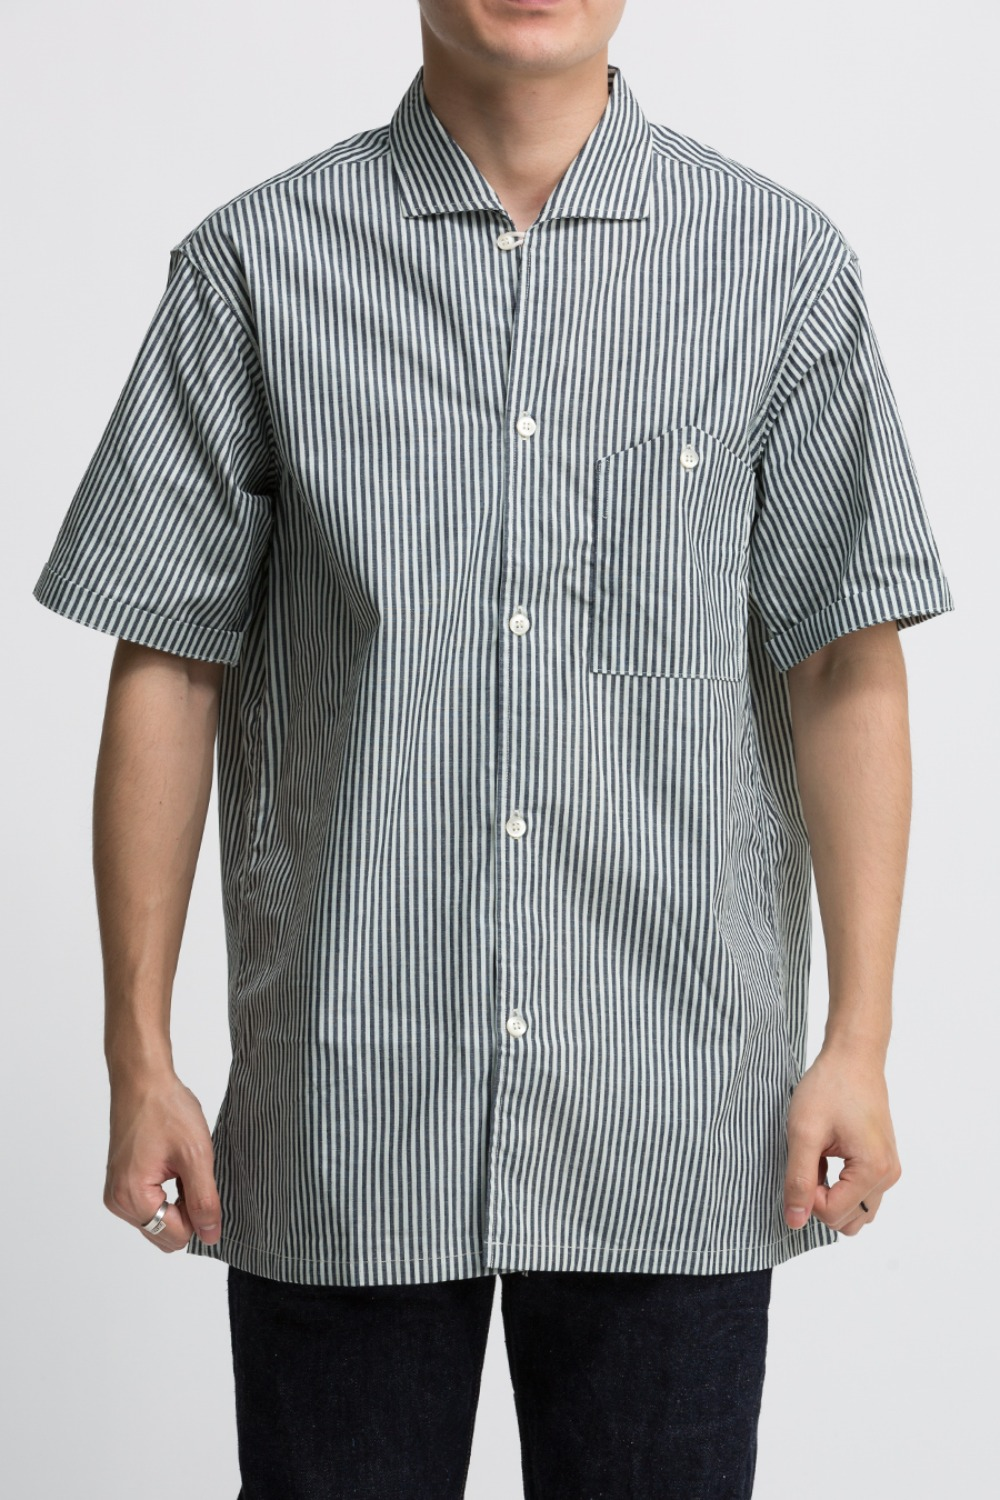 LOT 3091 S/S OPEN COLLAR SHIRTS STRIPE (NARROW)